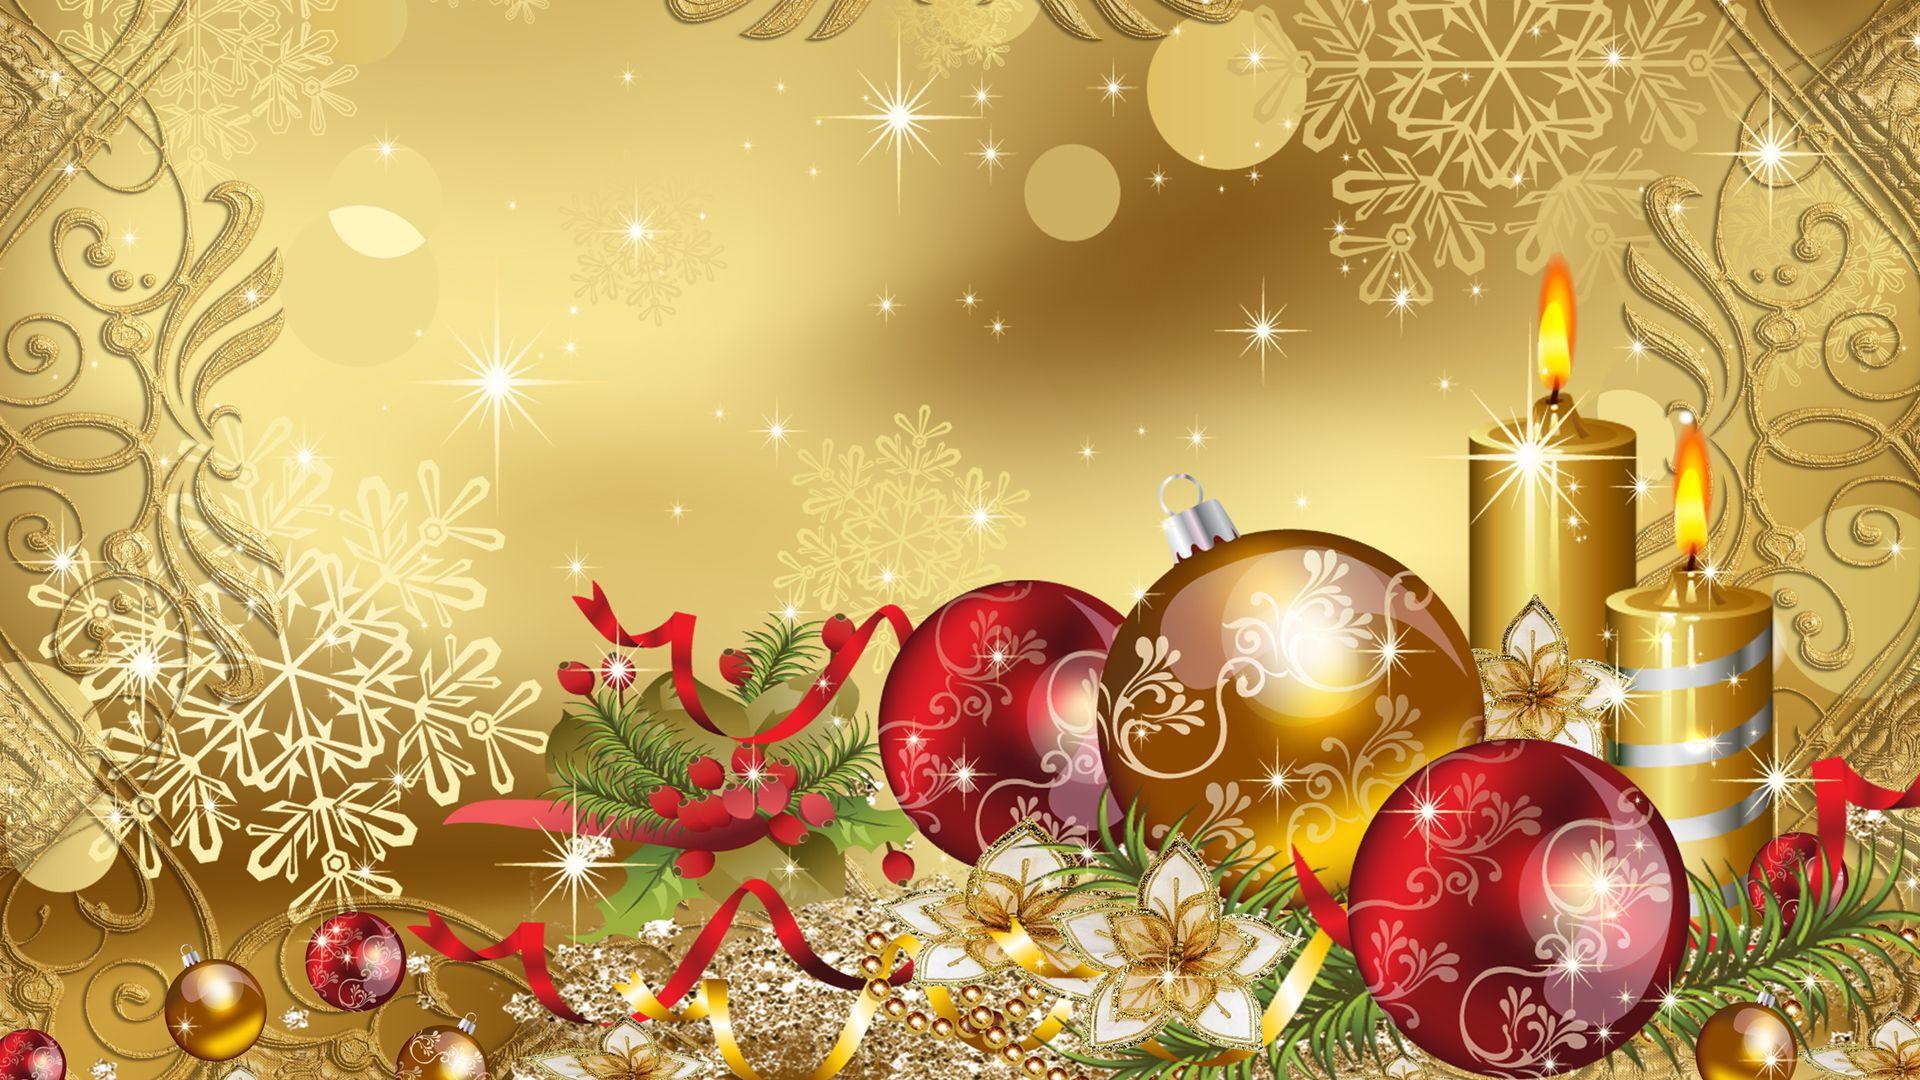 Christmas Backgrounds 110 images in Collection Page 1 1920x1080